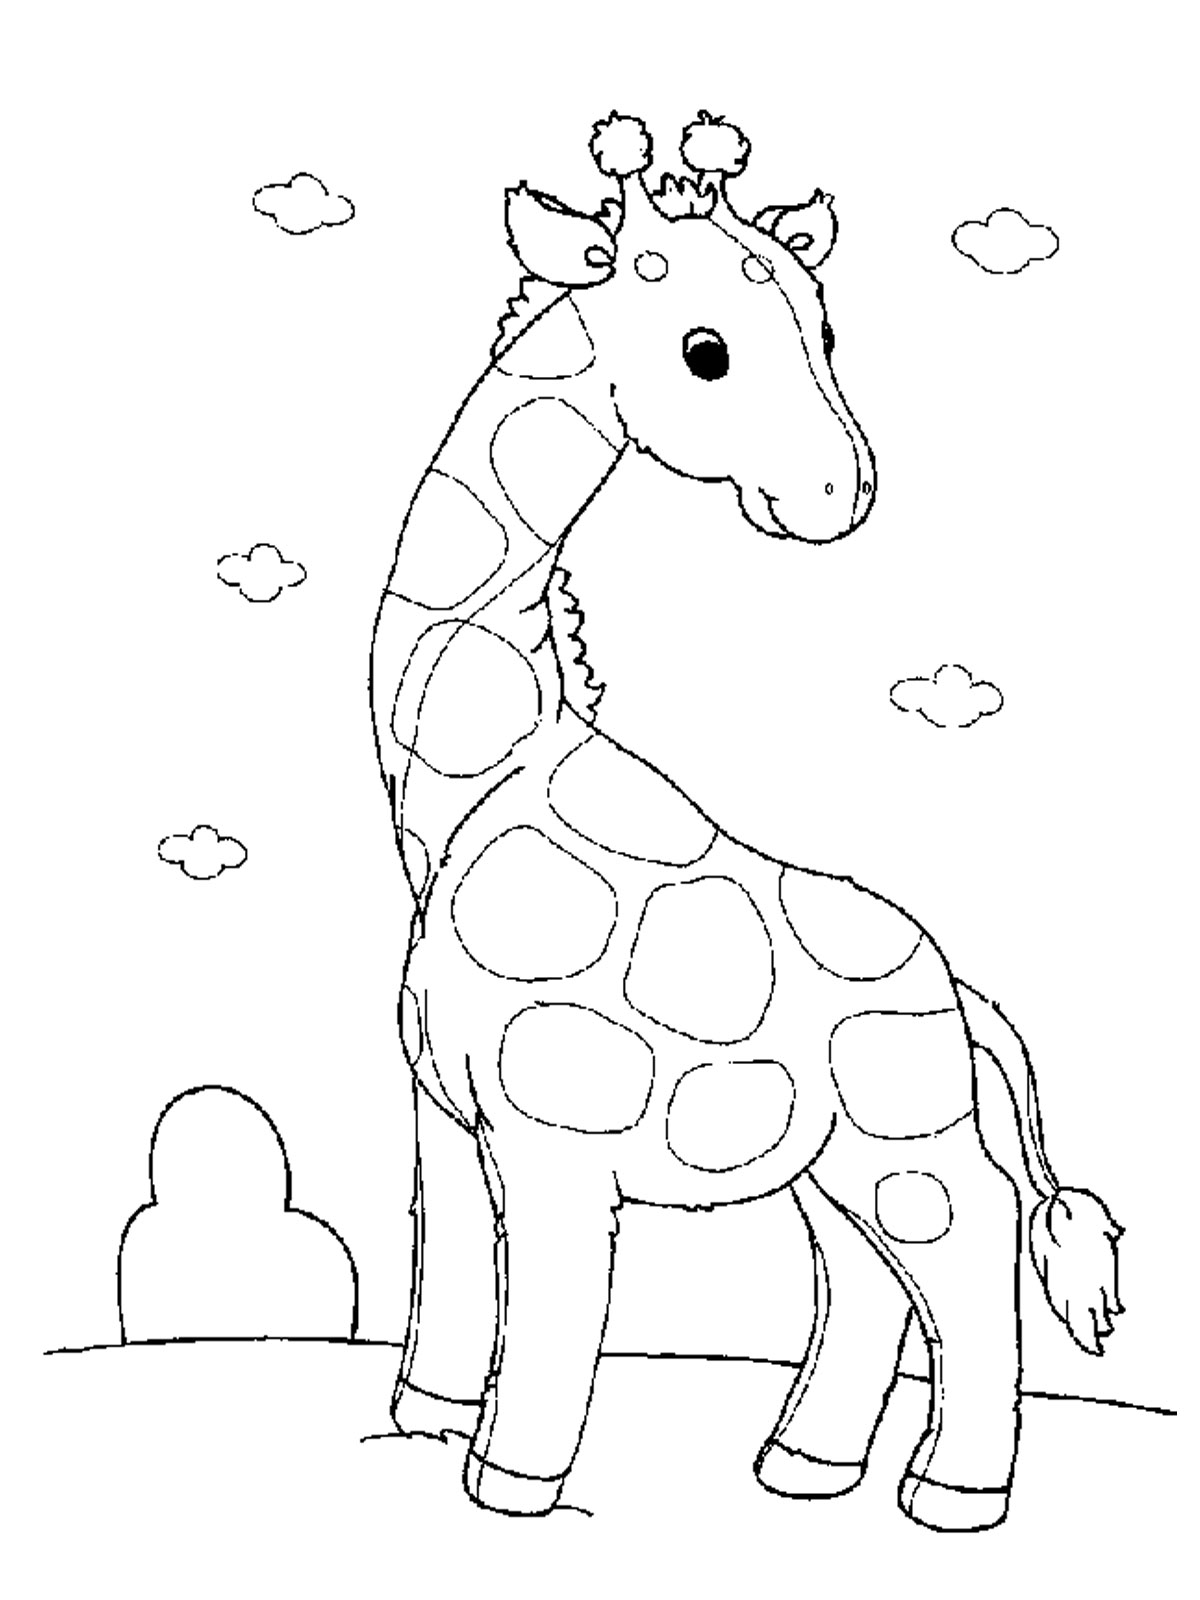 animal coloring pages free - photo#13